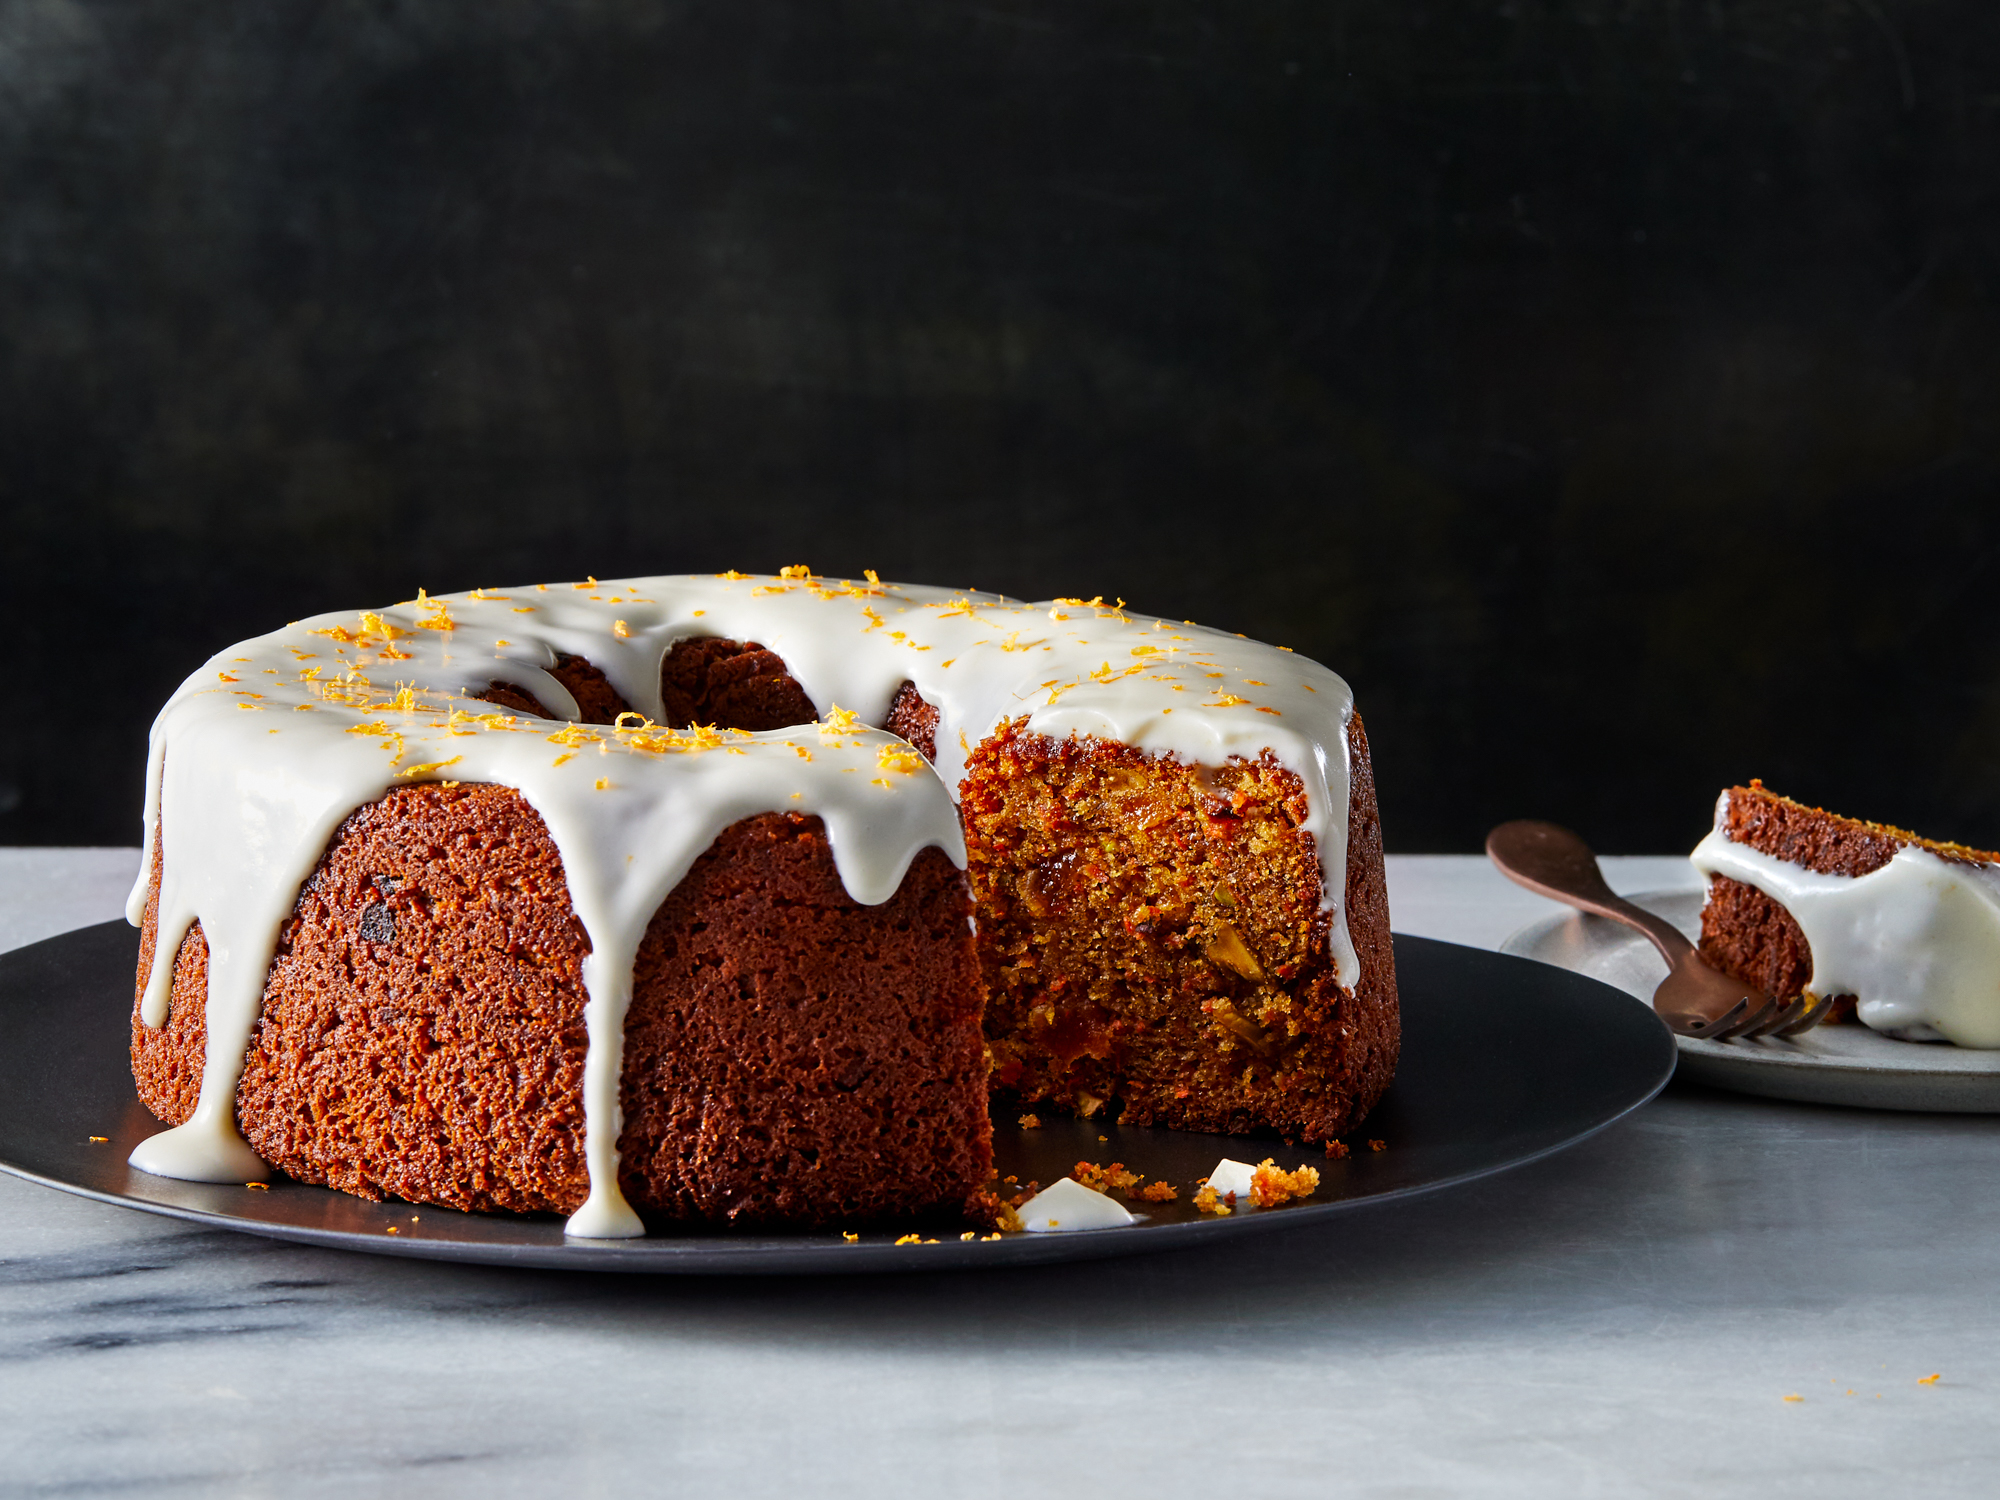 Carrot and Orange Cake with Sour Cream Glaze